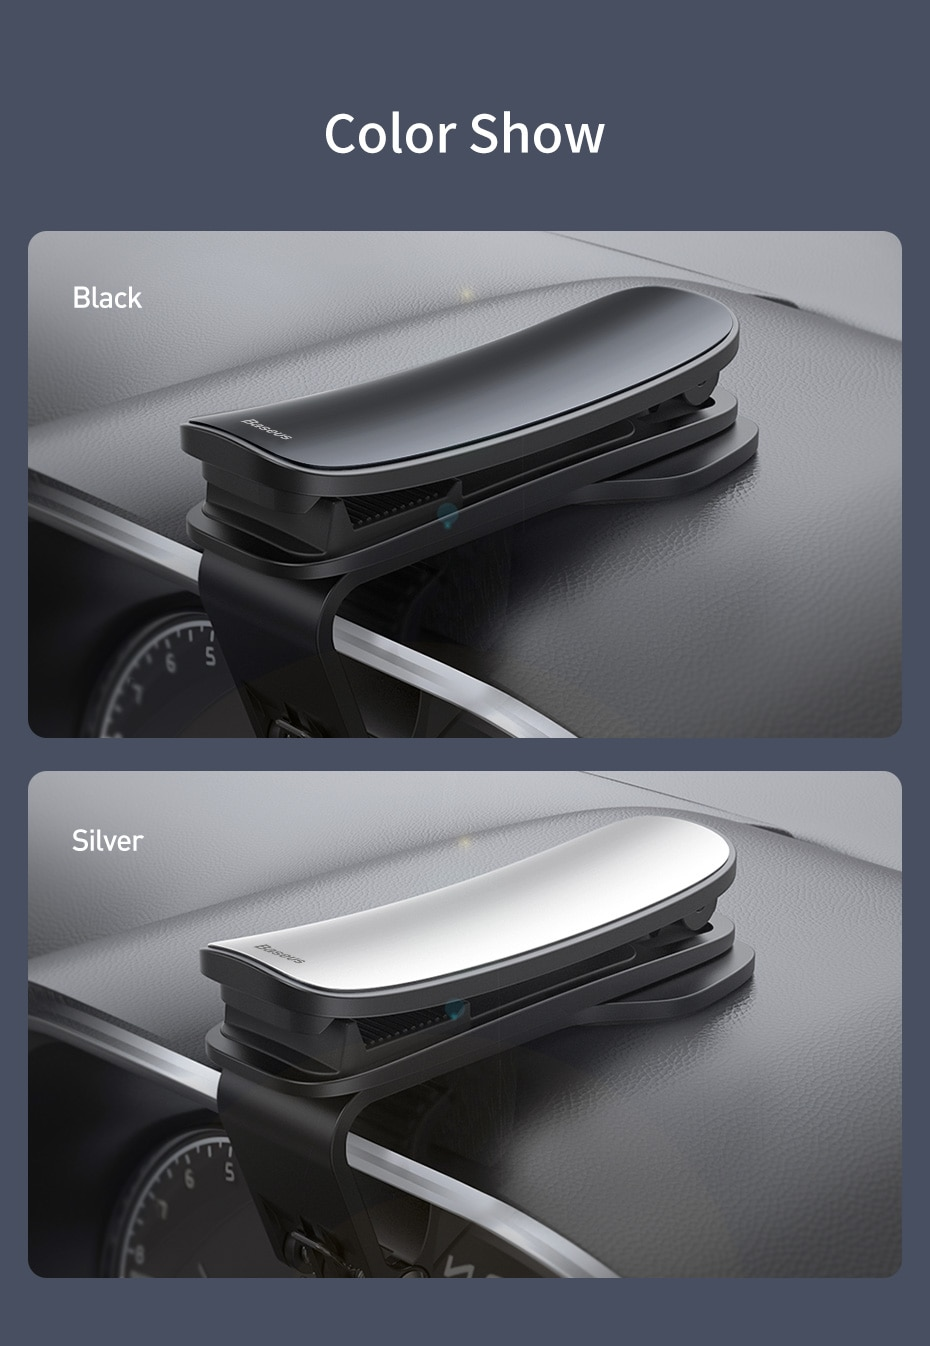 Baseus Car Phone Holder Dashboard Mount Stand For iPhone 11 pro Xs Max Mobile Phone Support Holder For Samsung Xiaomi Huawei